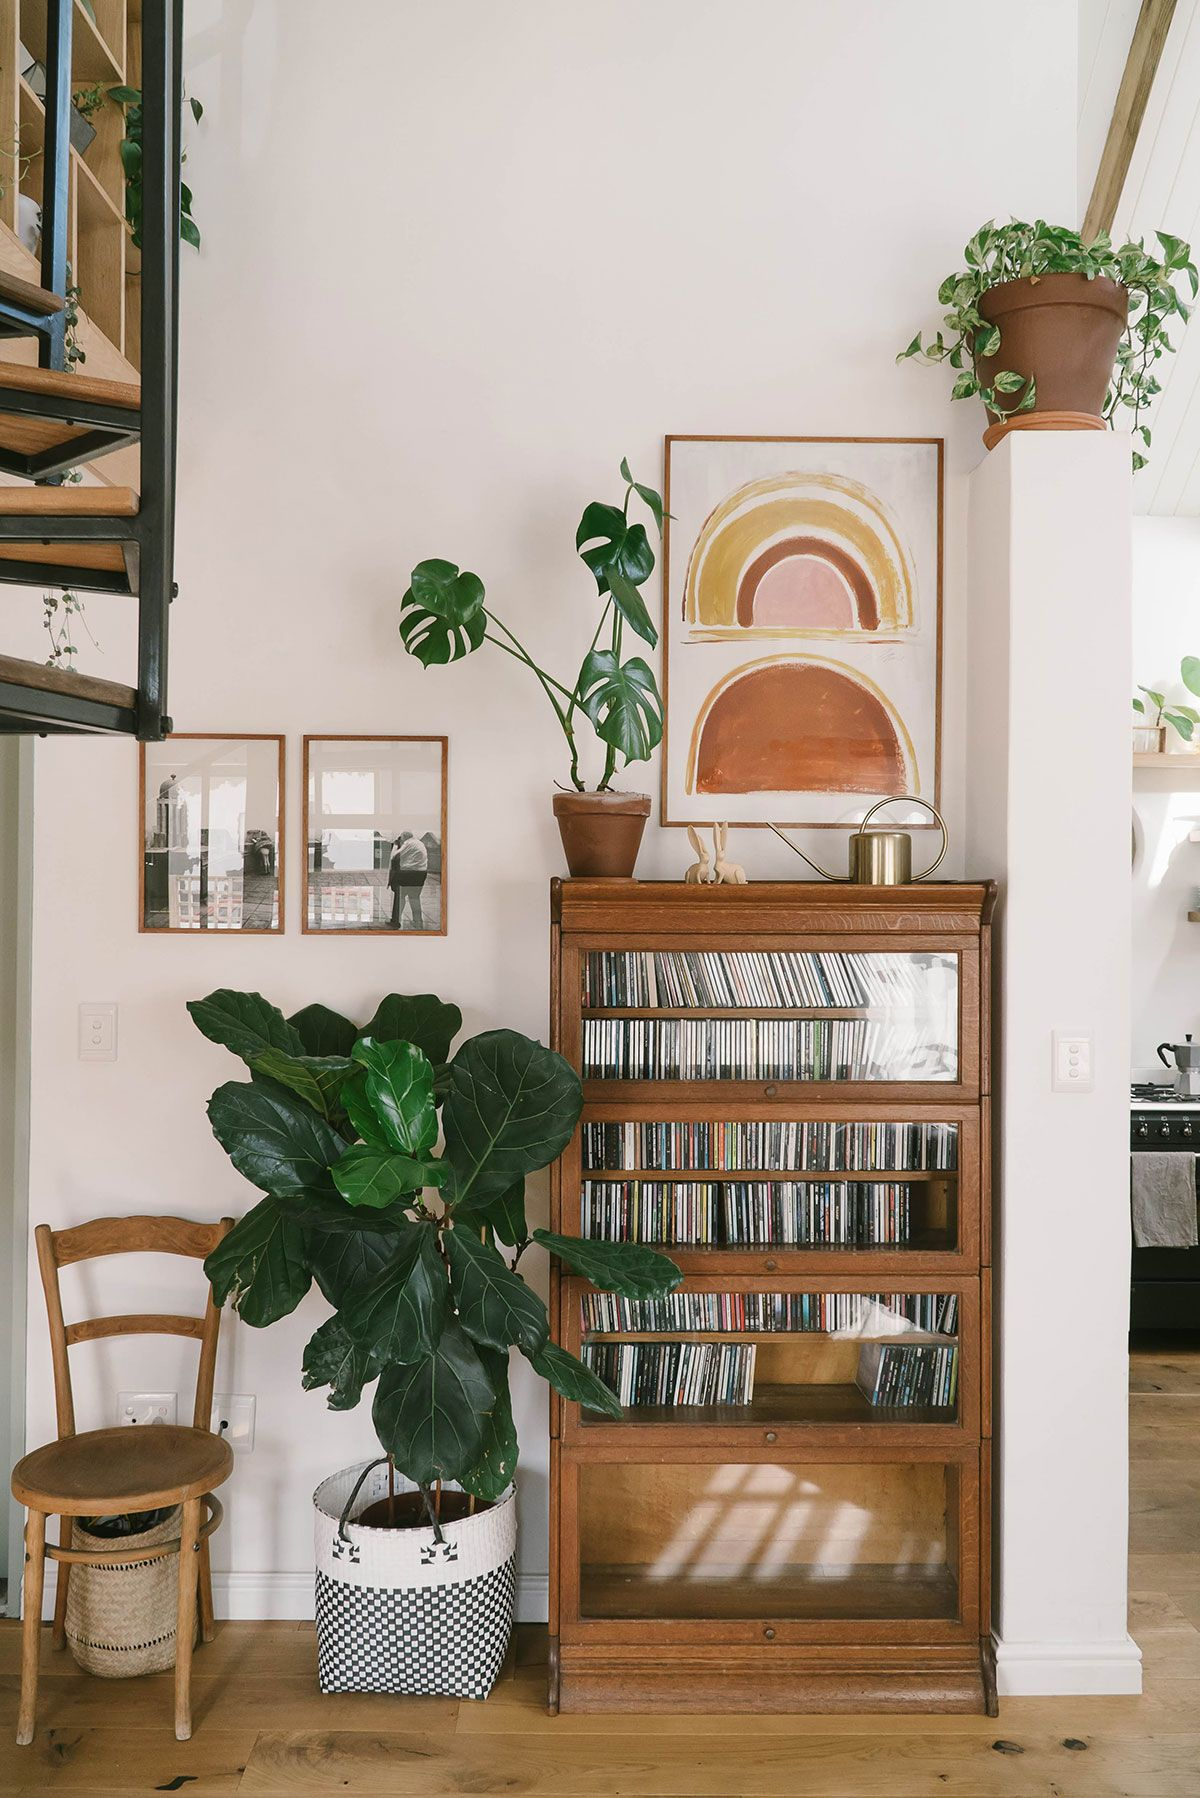 Pin By Carly Travis On Shelfie Pinterest Maison Cottage And